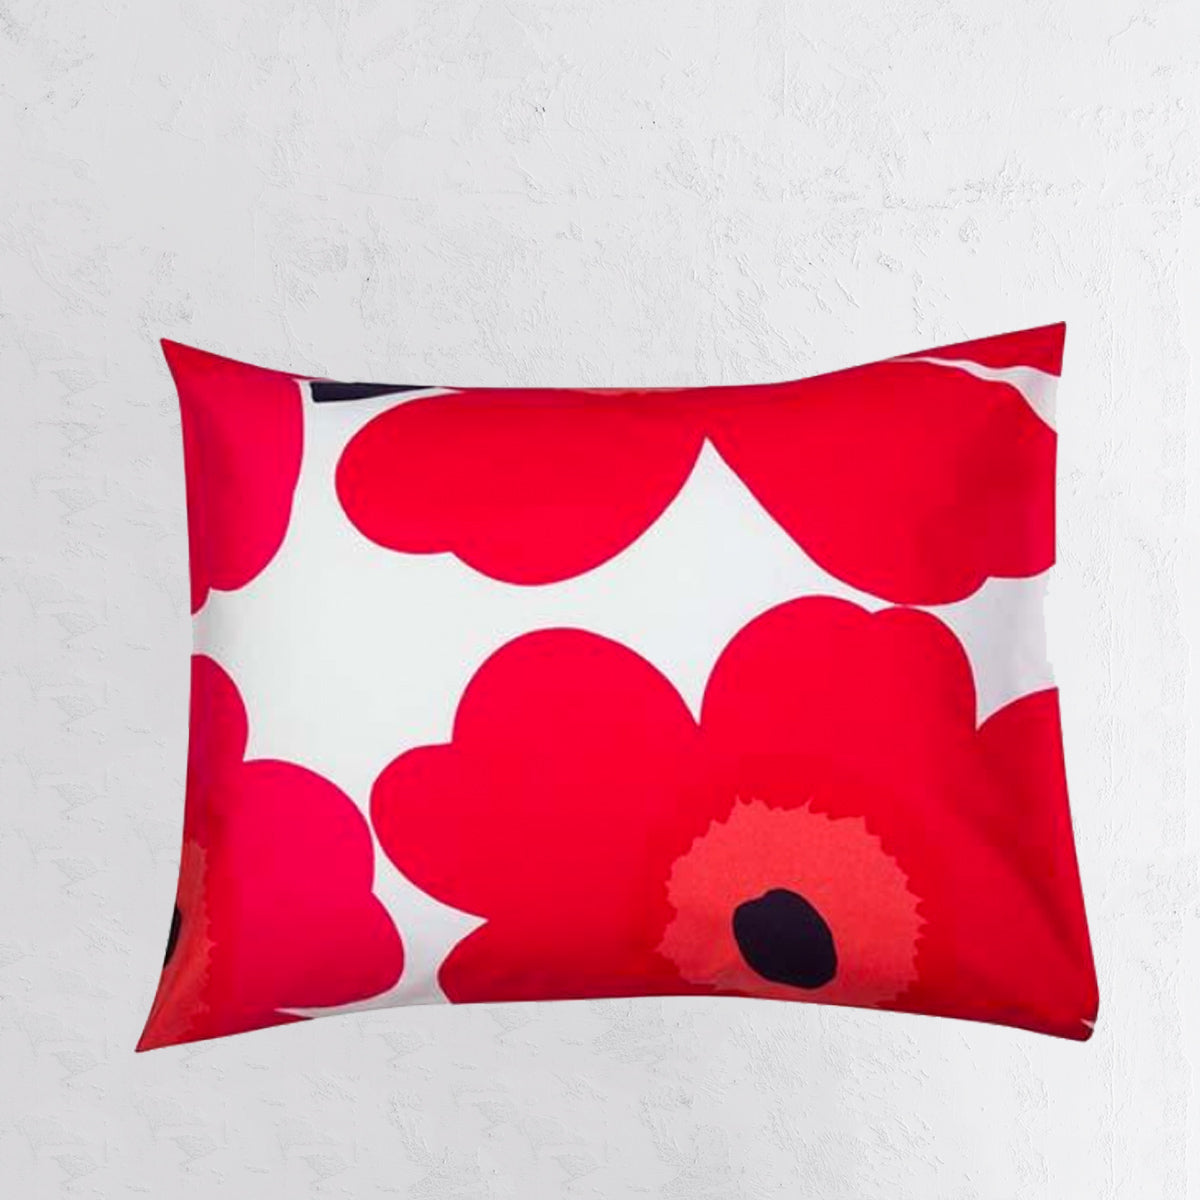 MARIMEKKO  |  UNIKKO PILLOW CASE  |  70 x 50 |  RED PINK POPPY FLOWER